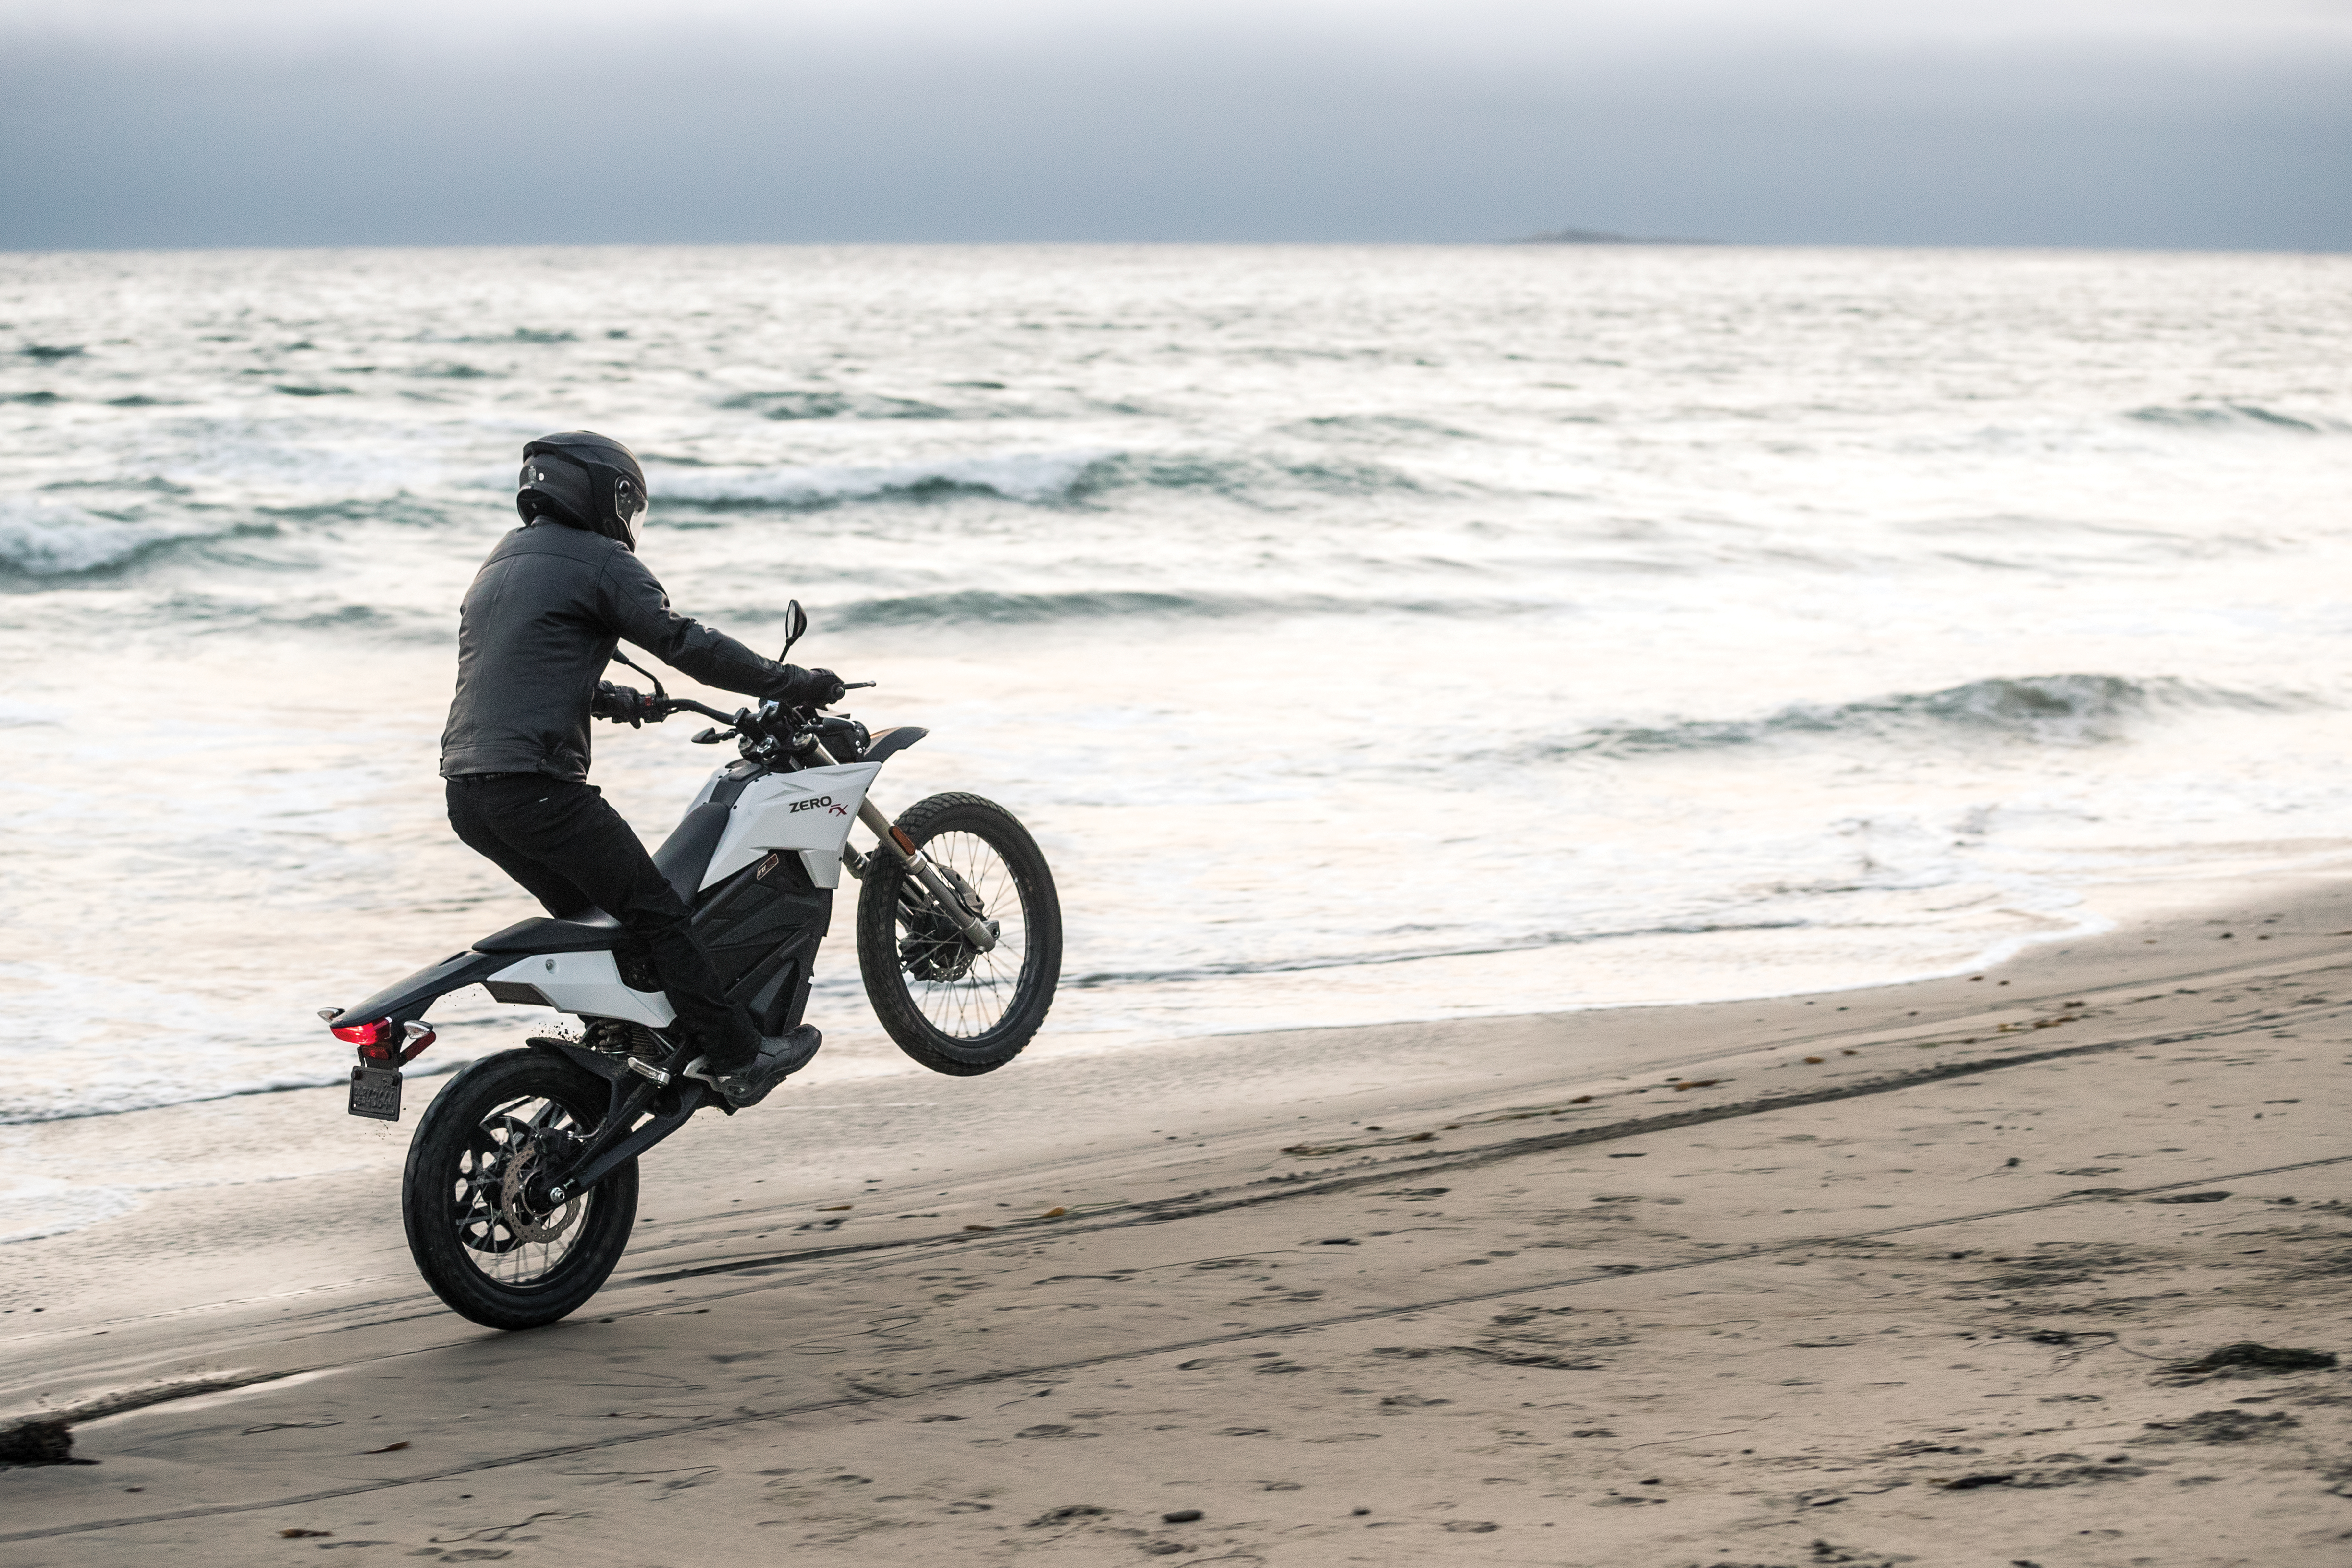 2018 Zero FX Electric Motorcycle: